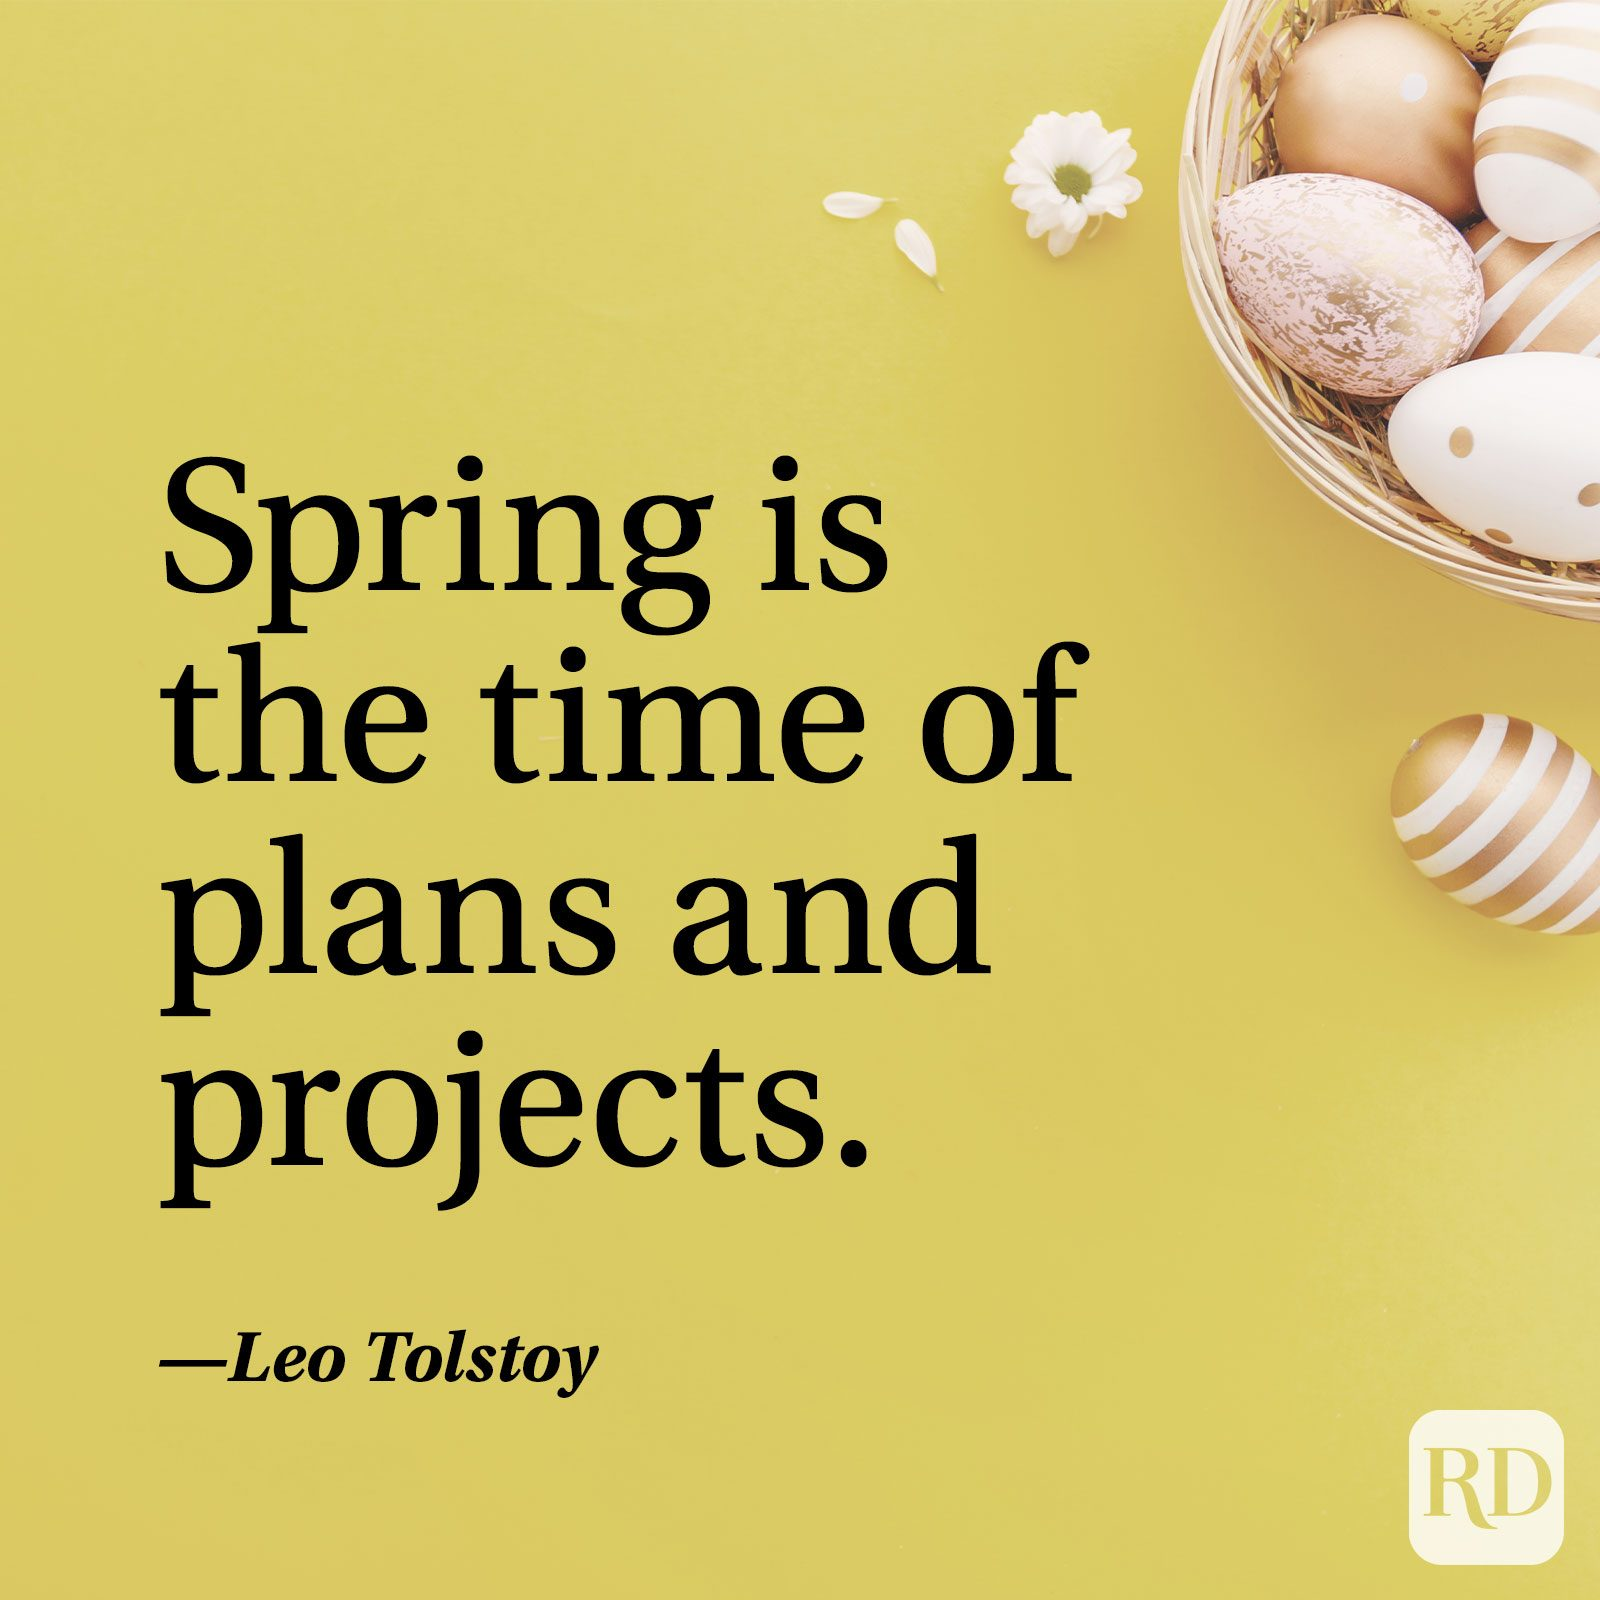 """Spring is the time of plans and projects."" — Leo Tolstoy"